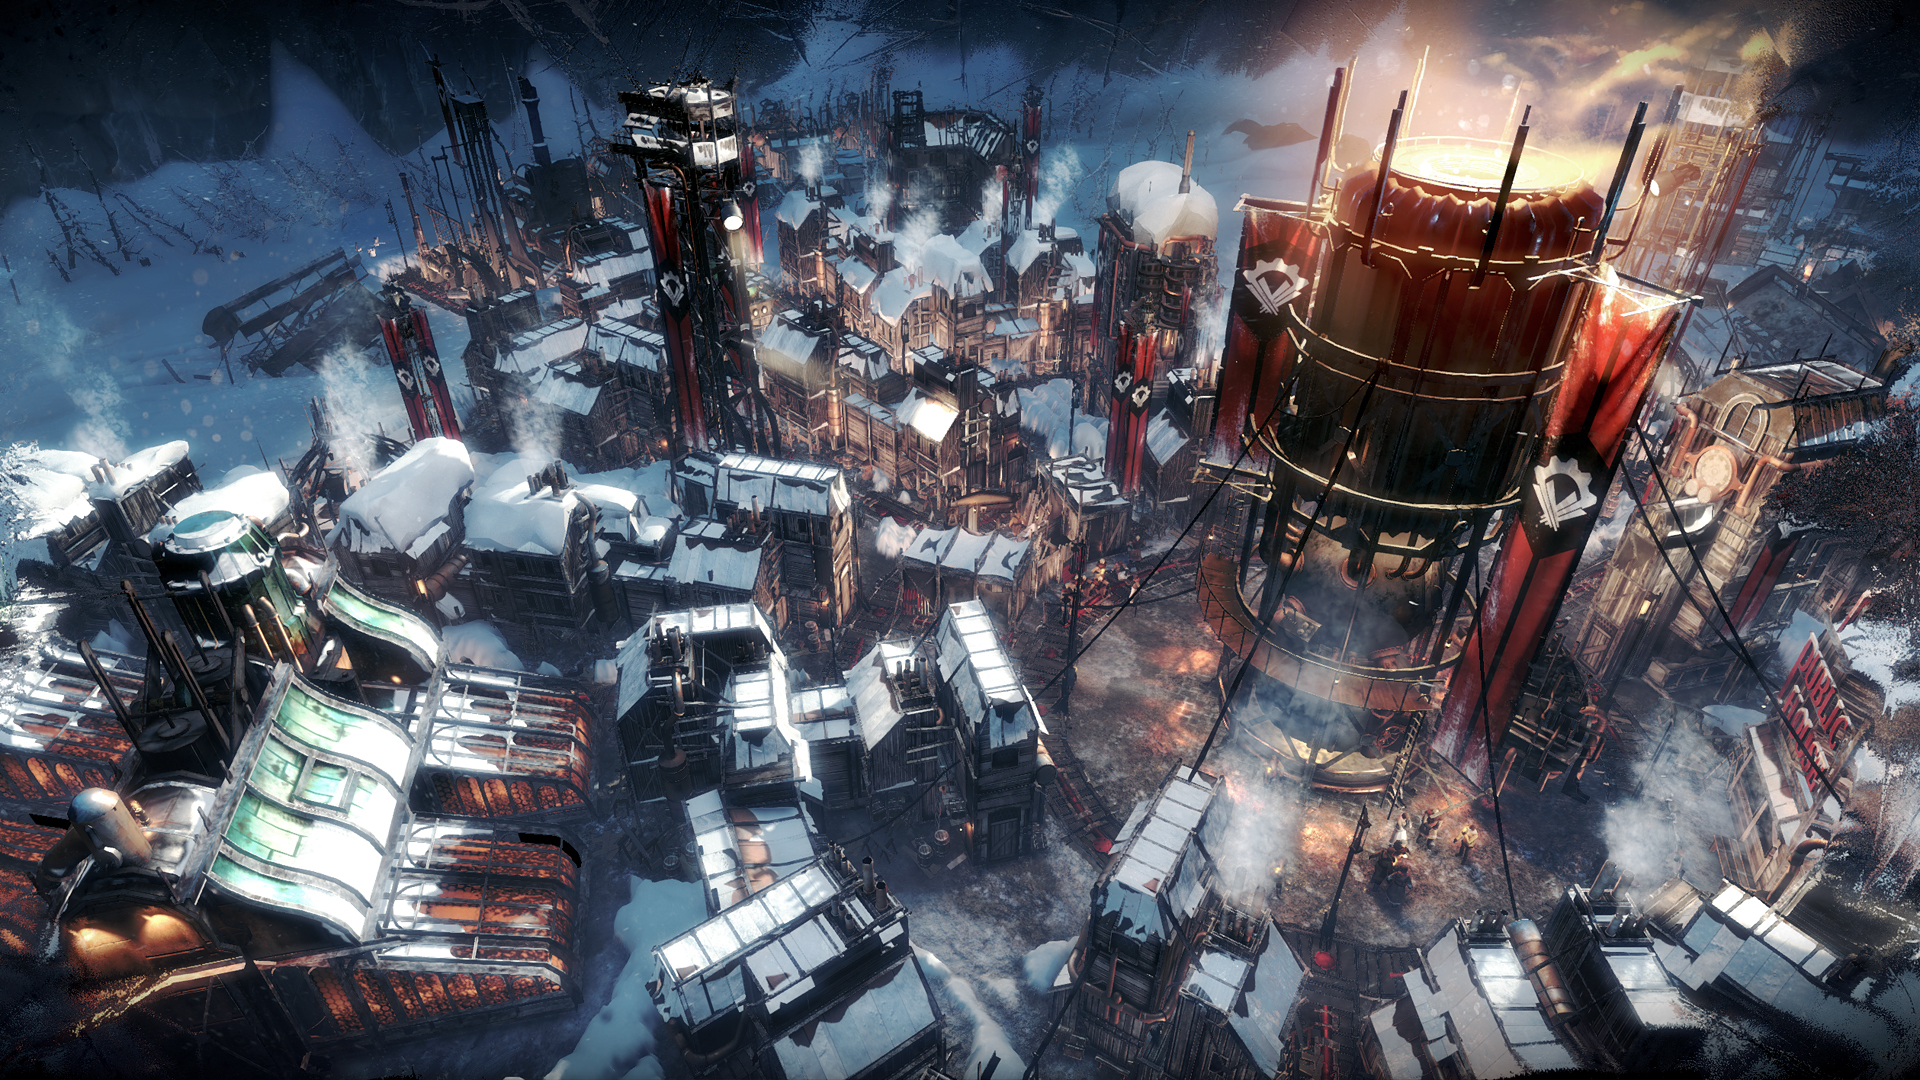 Frostpunk 2018 Game Wallpapers: Chillingly Good Stuff